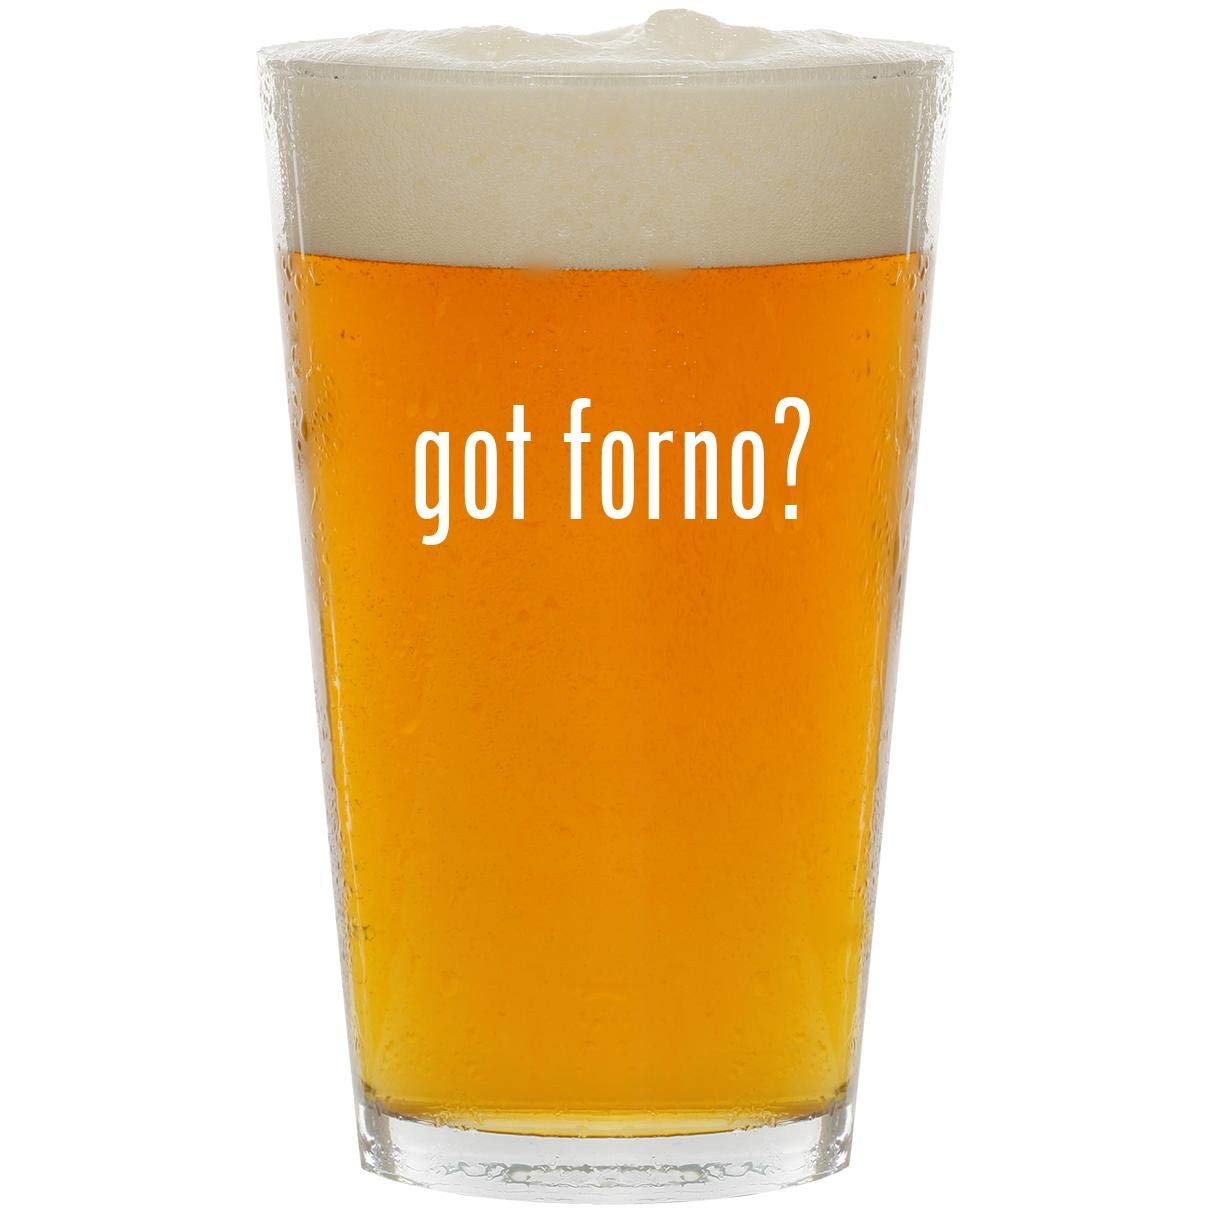 got forno? - Glass 16oz Beer Pint